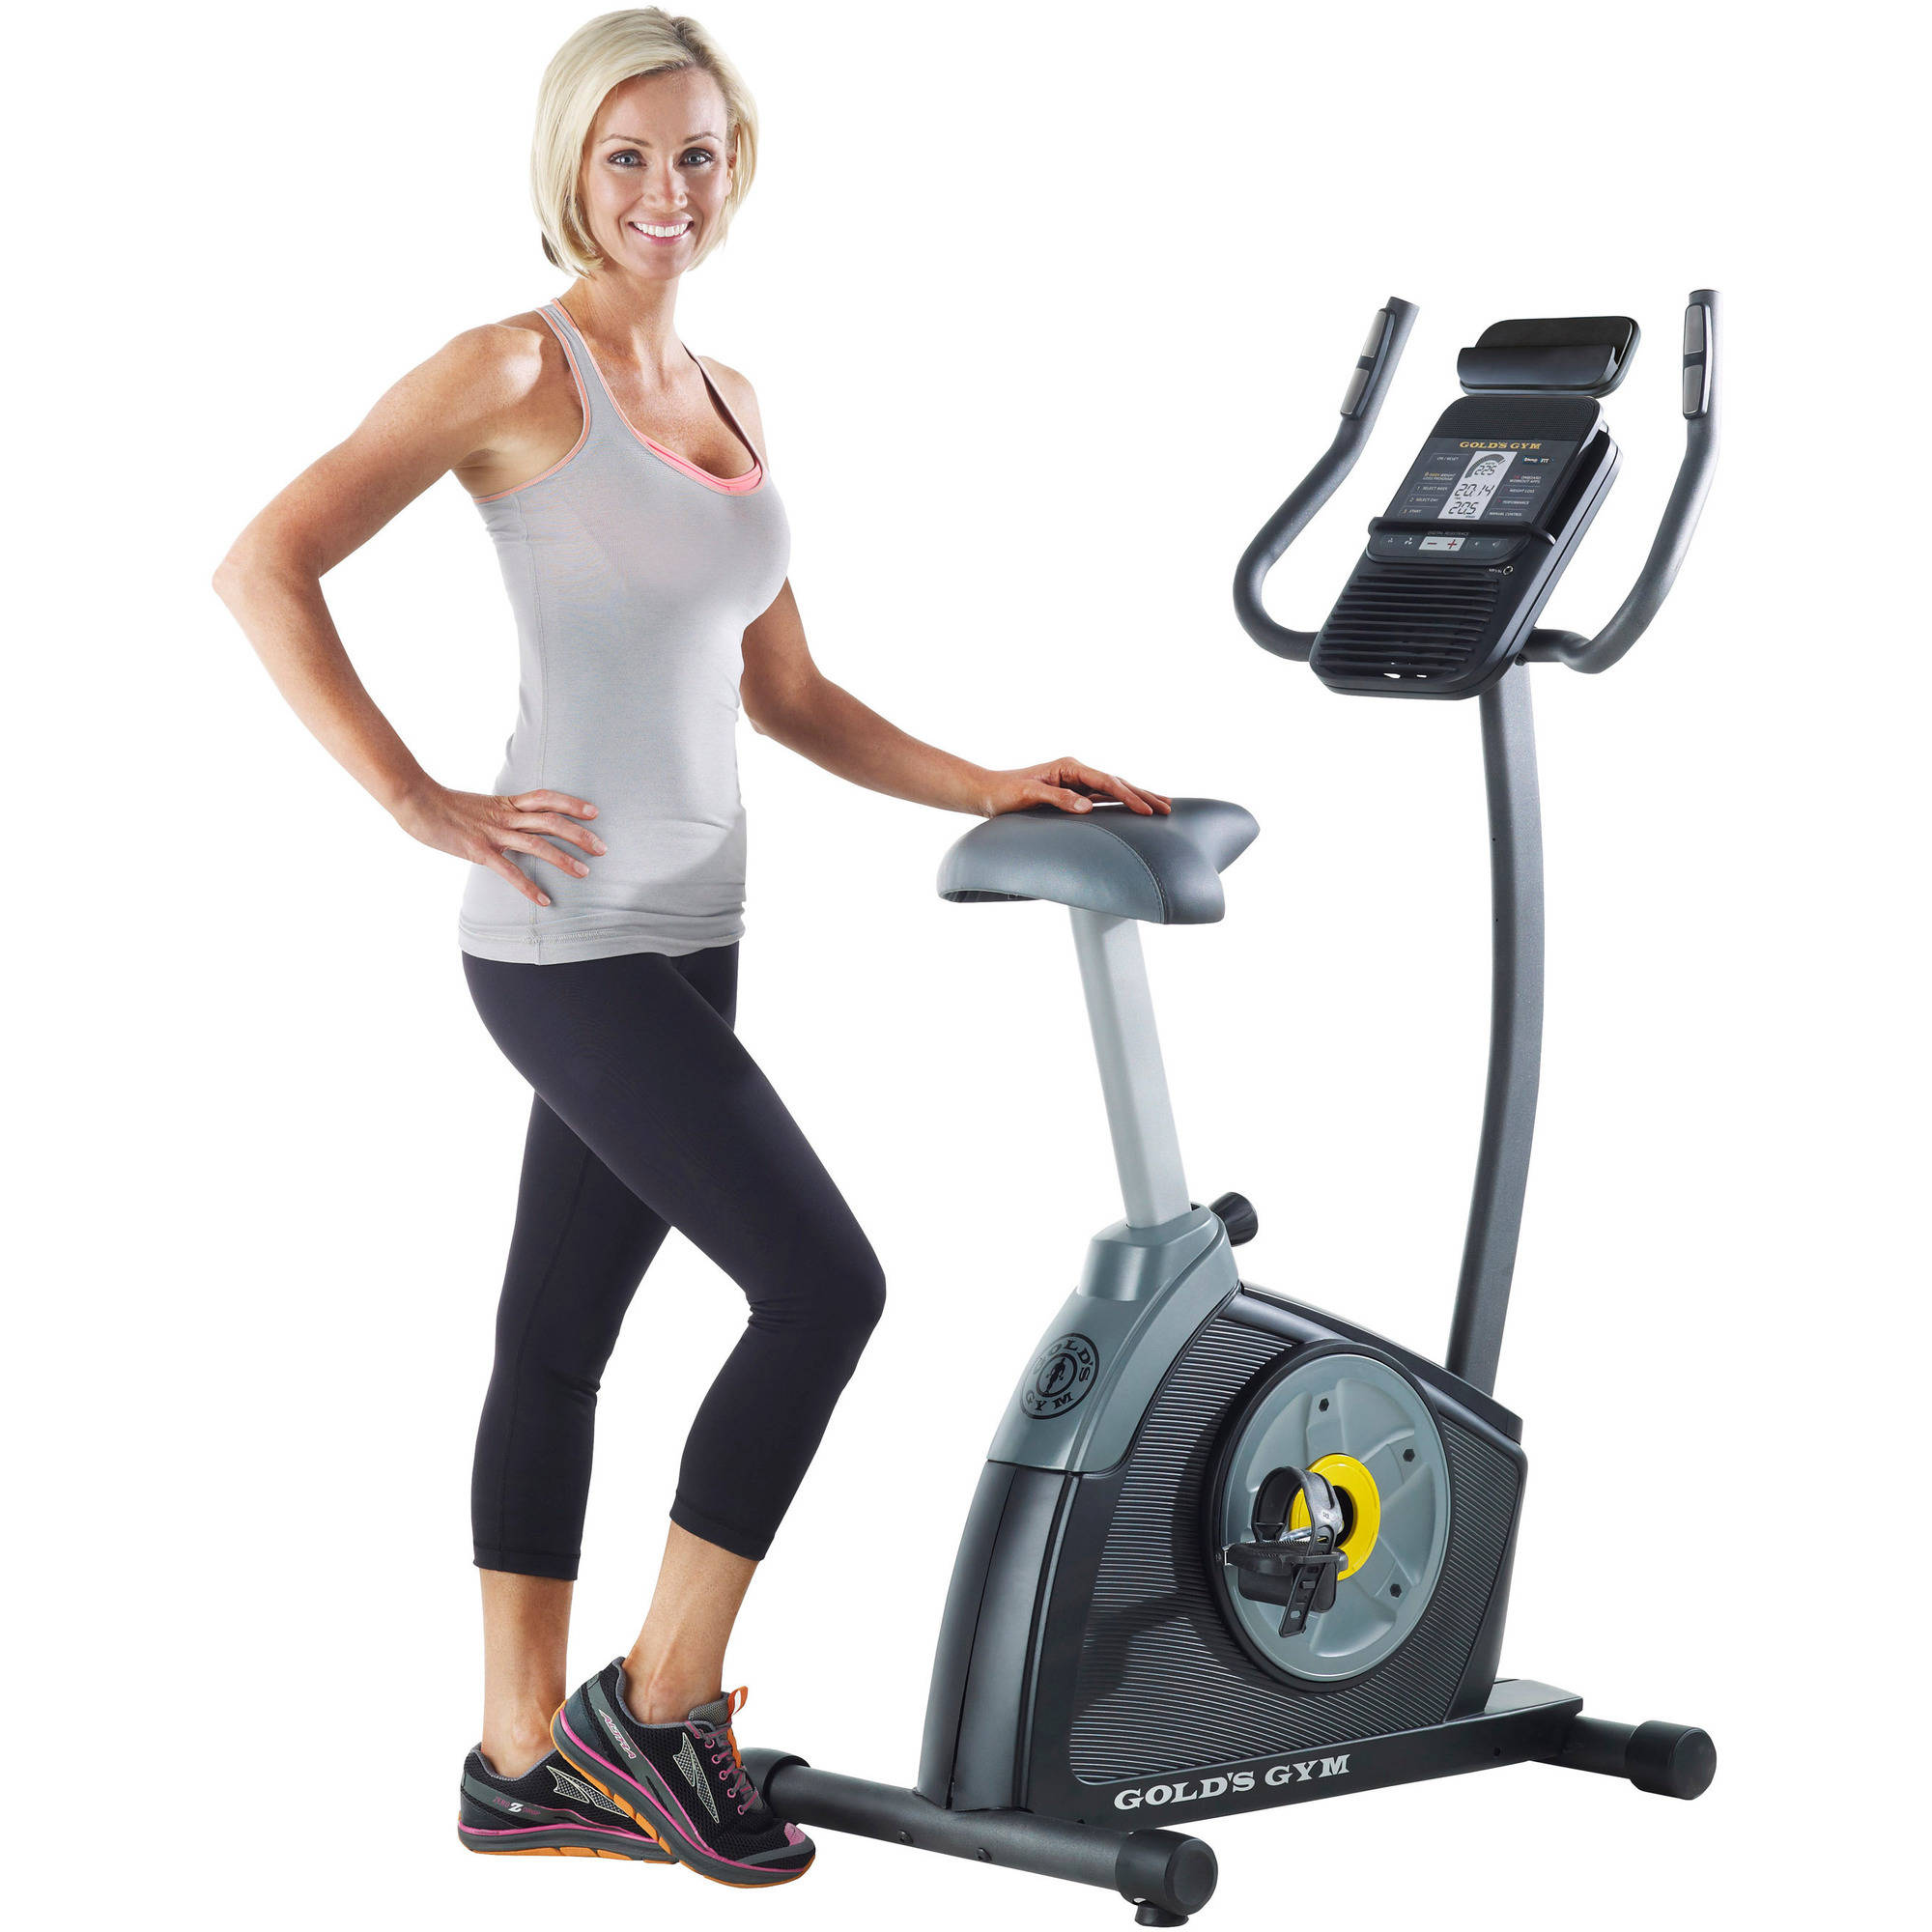 f4139b770e4 Goplus Purple Upright Exercise Bike - Walmart.com